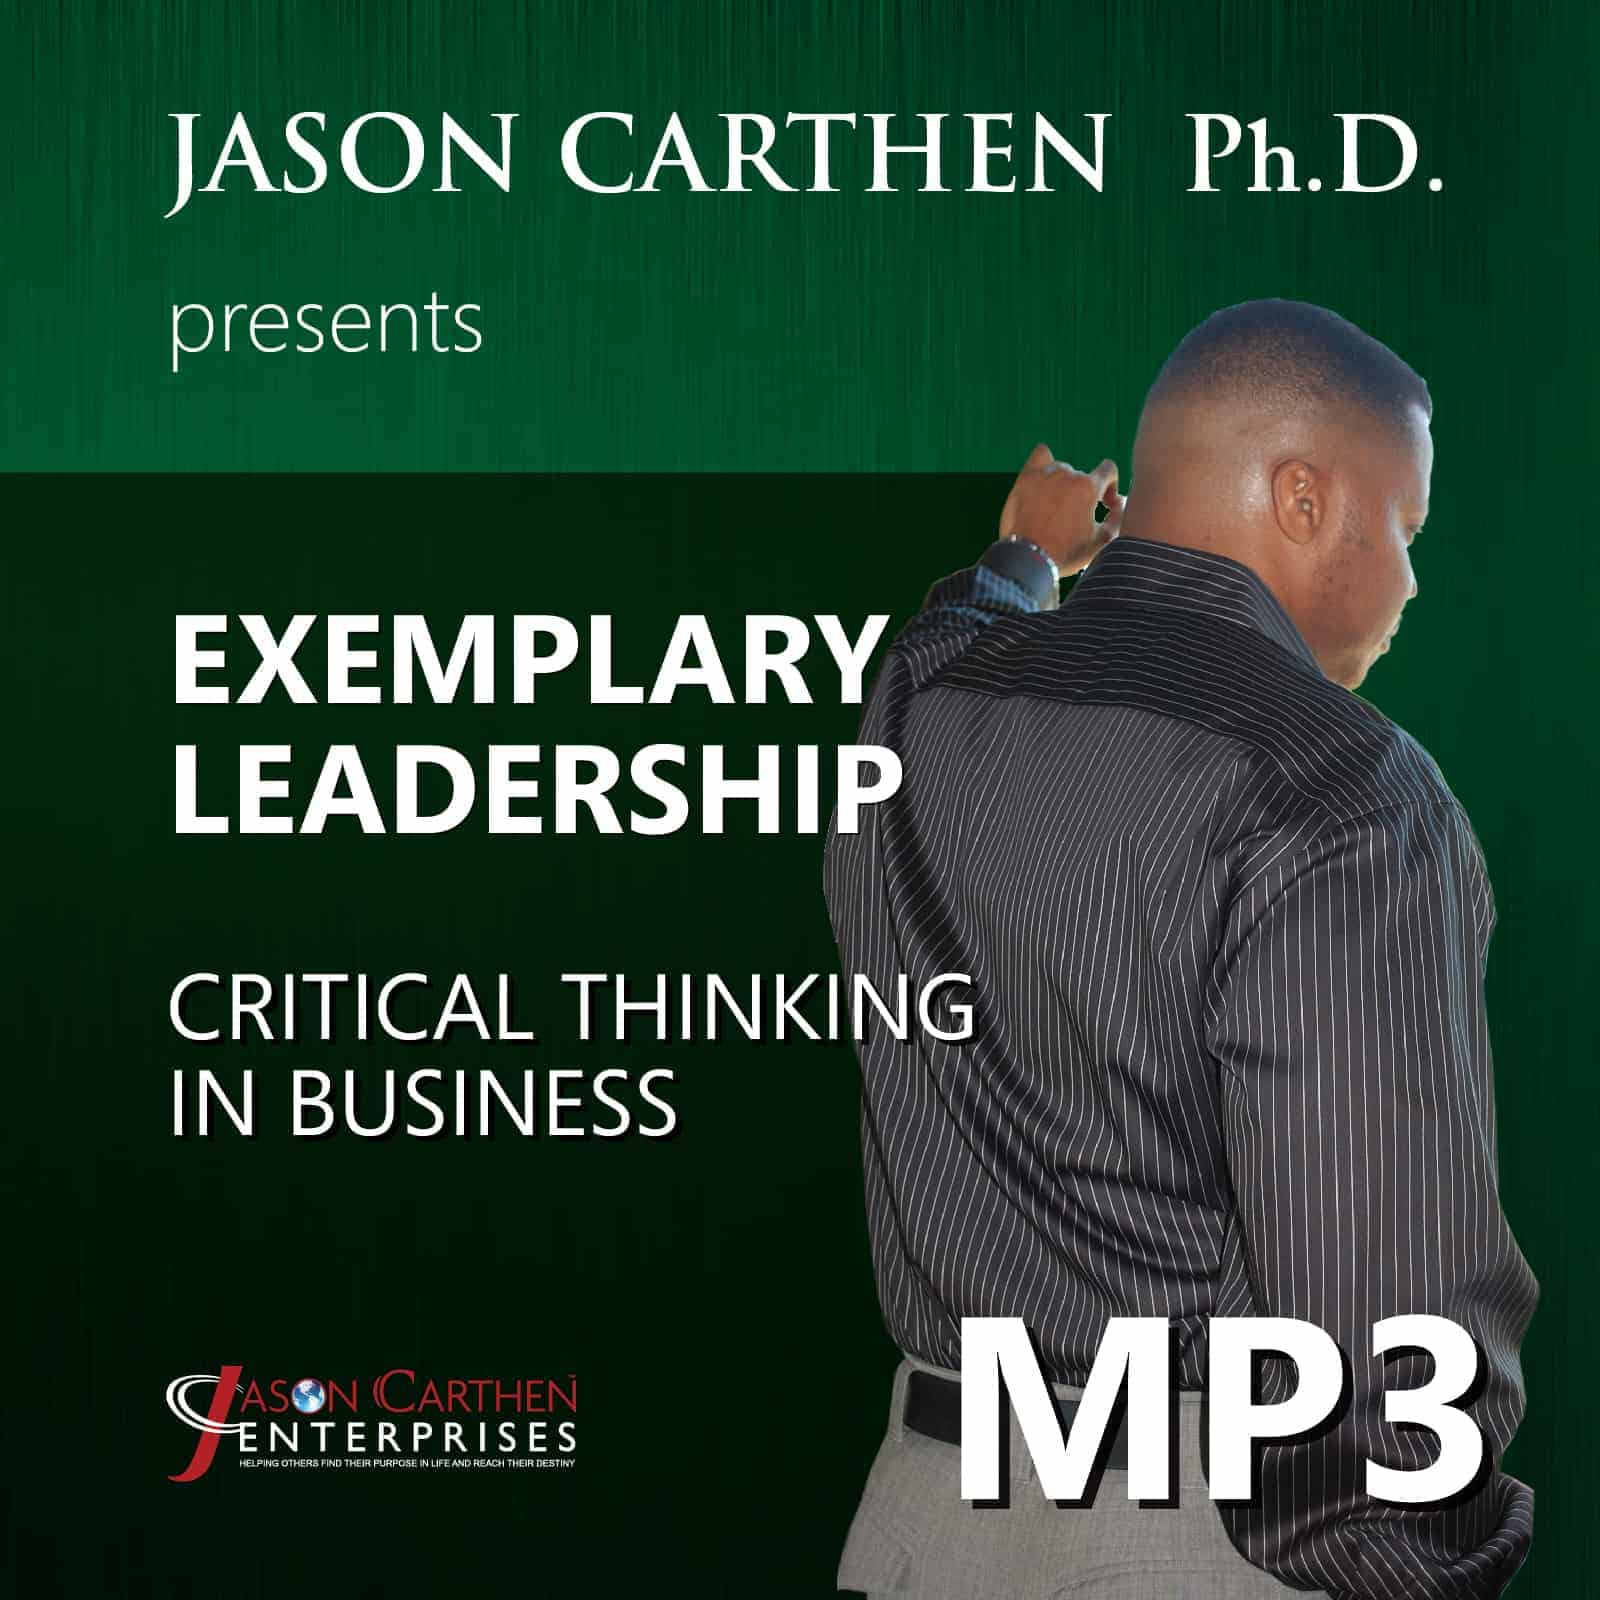 Dr. Jason Carthen: Developing Critical Thinking in Business